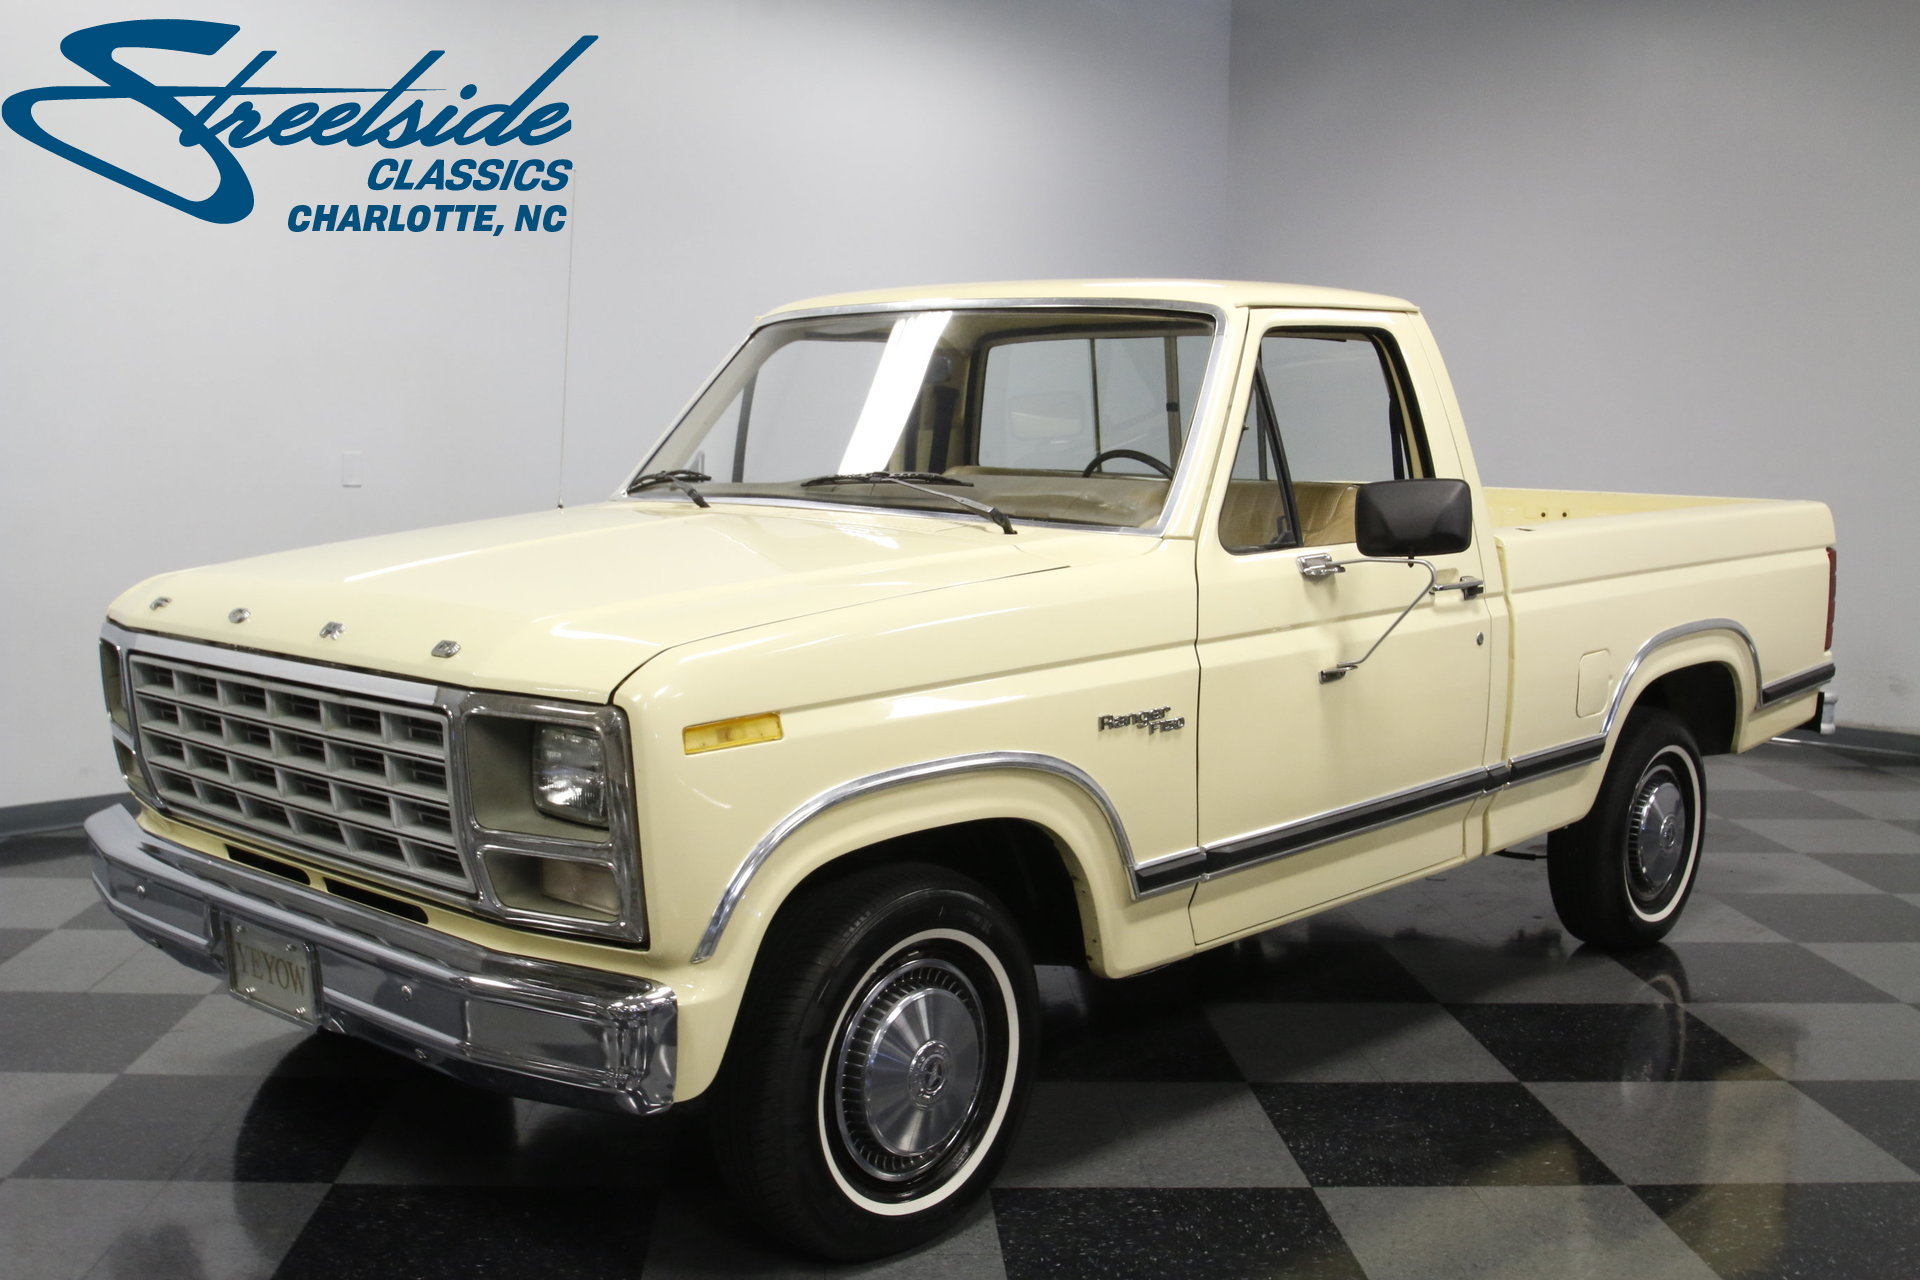 1980 ford f 150 streetside classics the nation 39 s trusted classic car consignment dealer. Black Bedroom Furniture Sets. Home Design Ideas